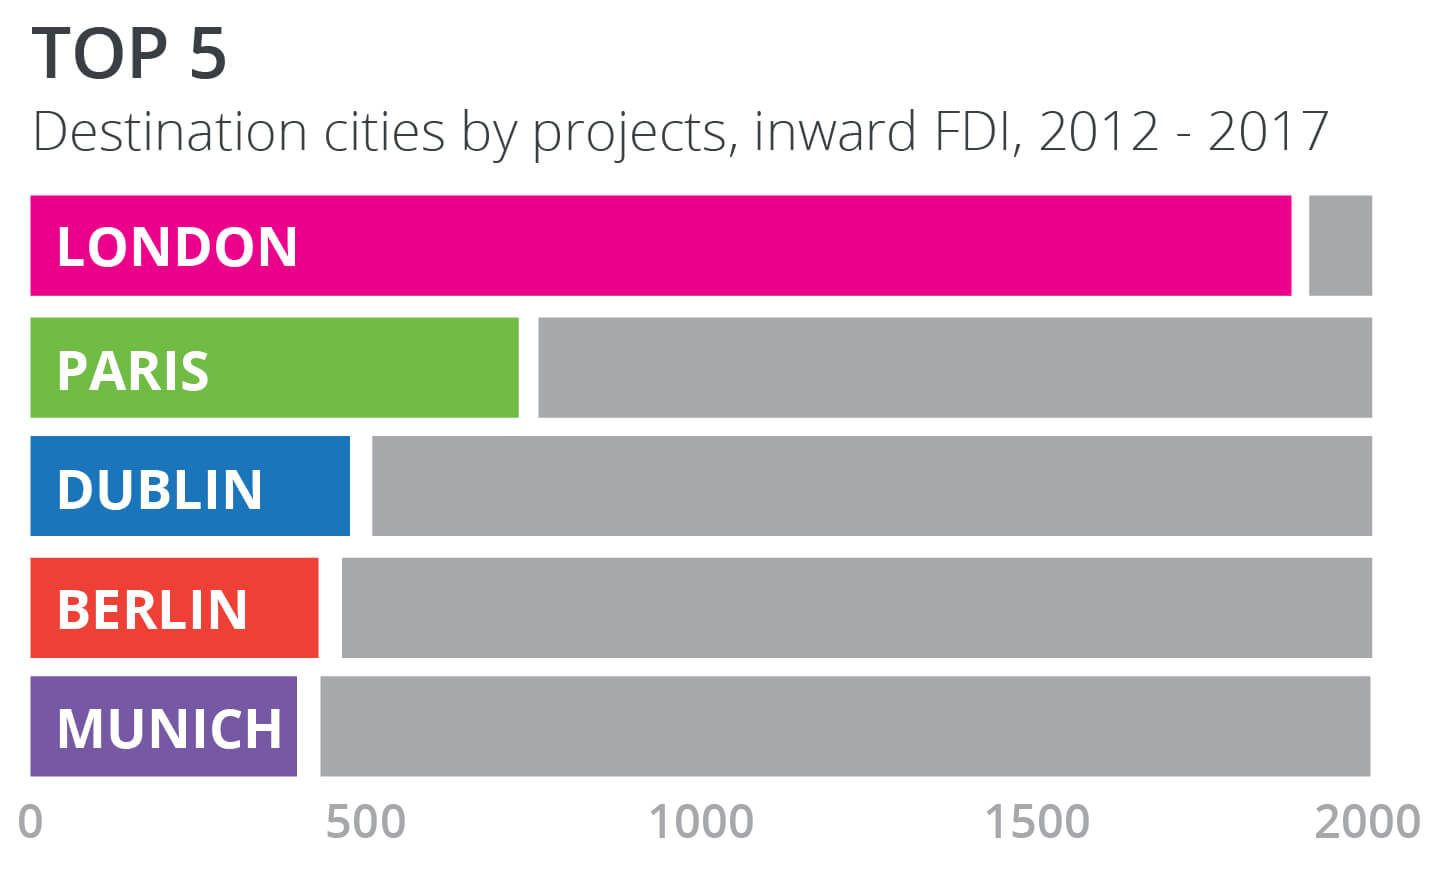 graph depicting top 5 European destination cities by projects, inward FDI